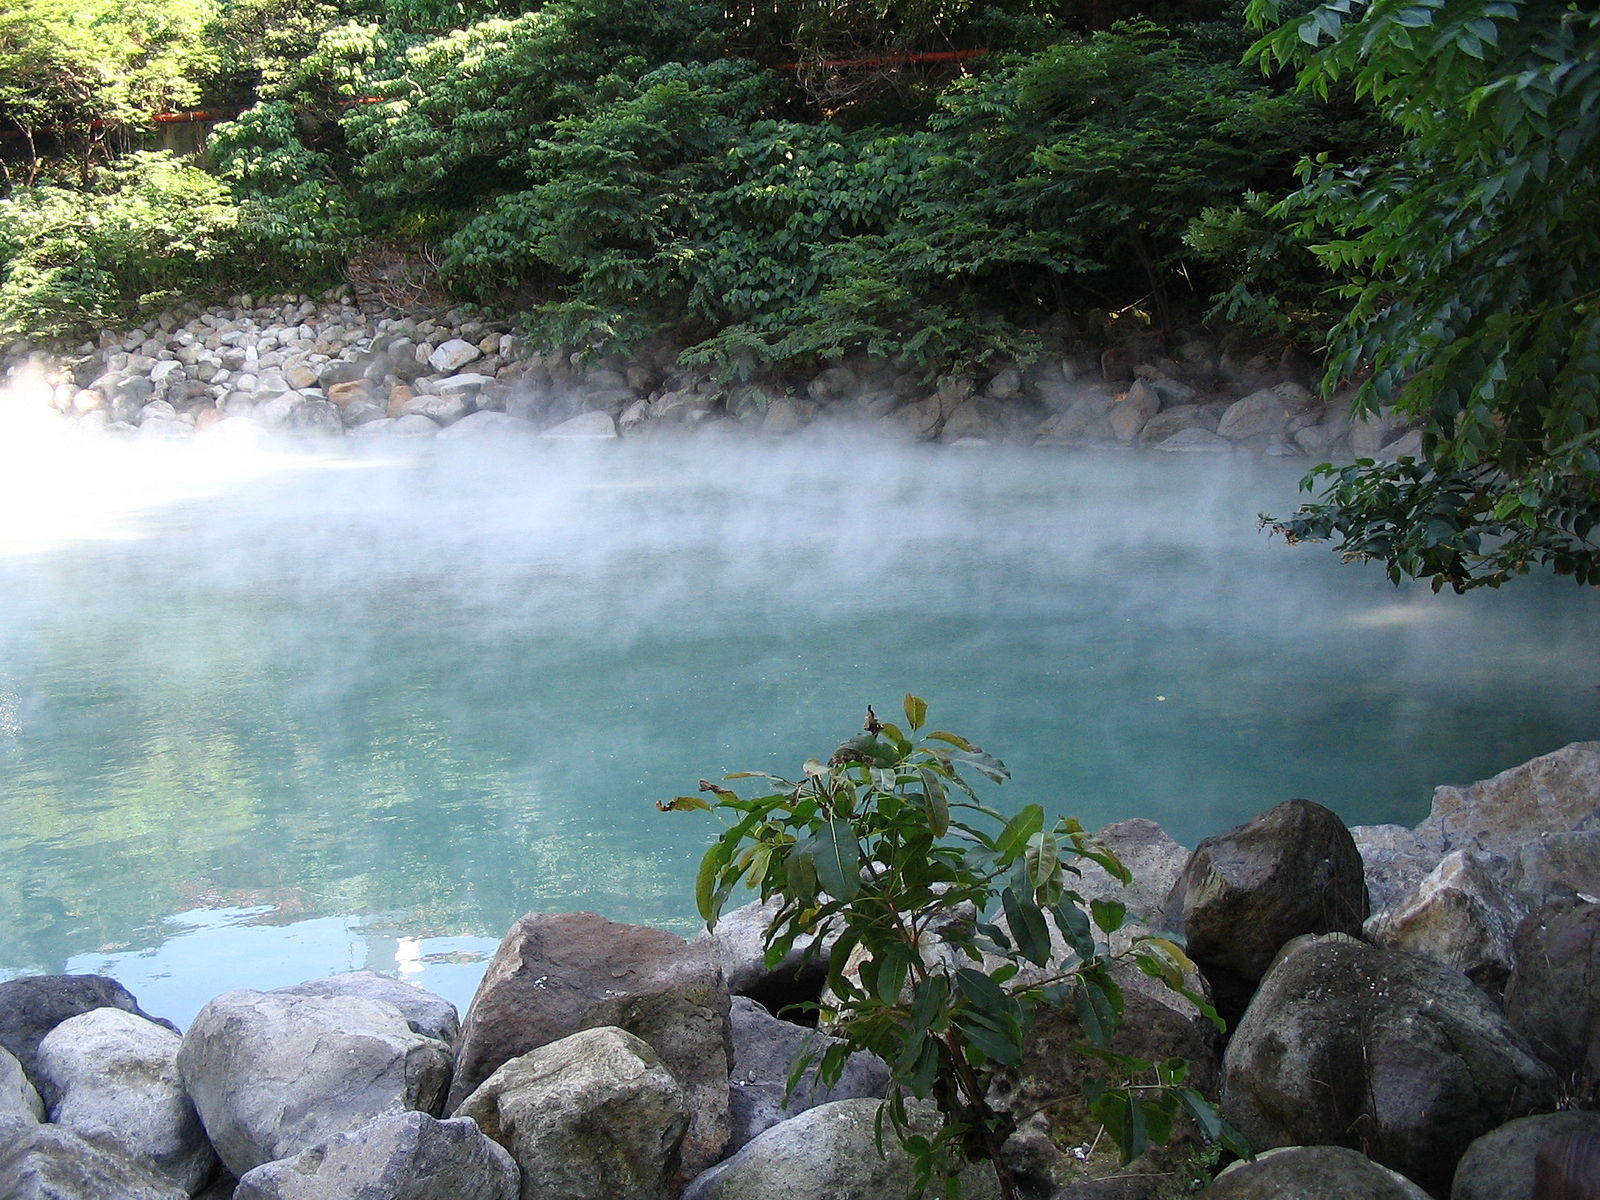 So many hot springs to choose from!